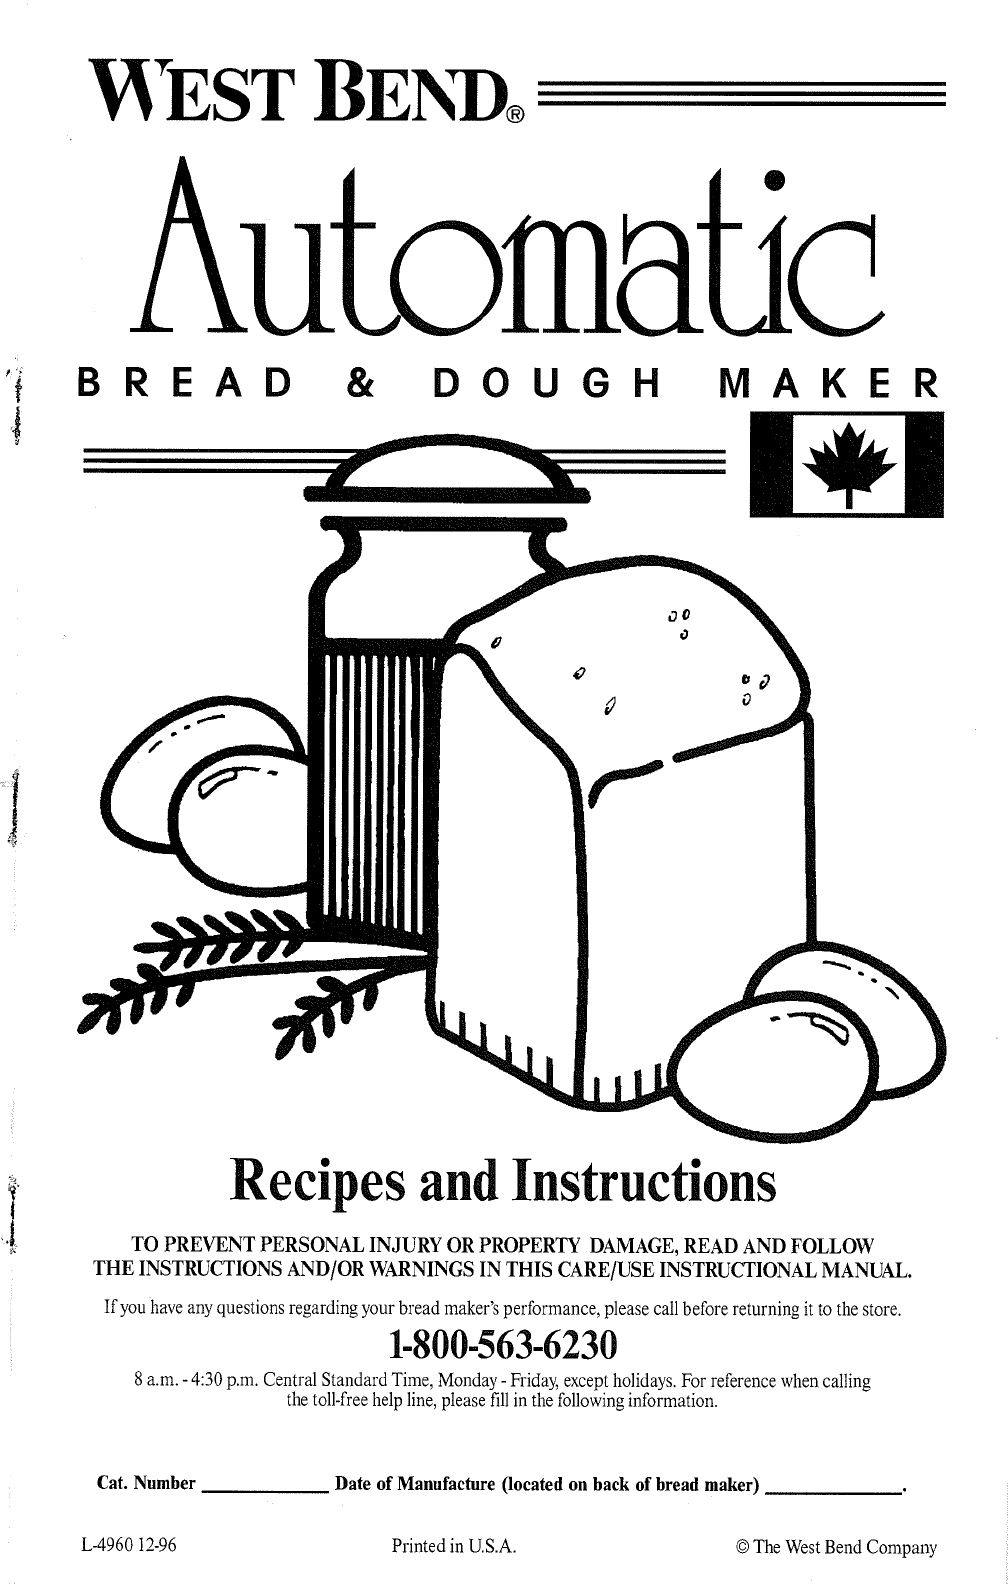 West Bend Automatic Bread And Dough Maker Recipe Book